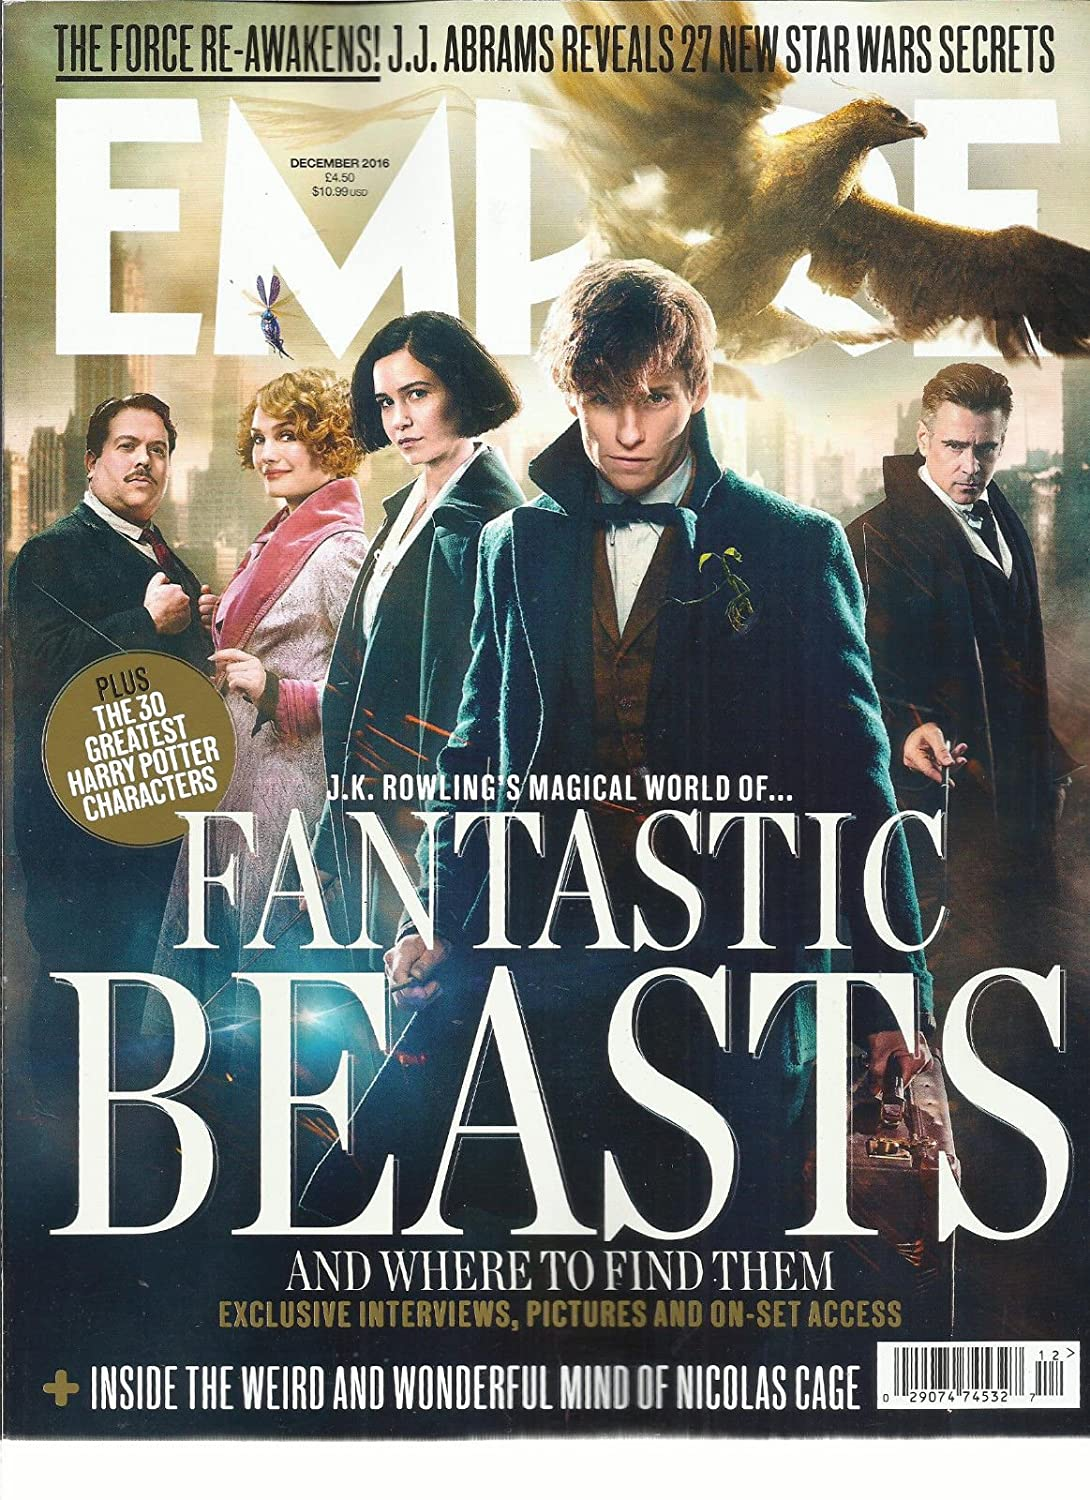 EMPIRE FANTASTIC BEASTS AND WHERE TO FIND THEM DECEMBER, 2016 ISSUE, 330 s3457